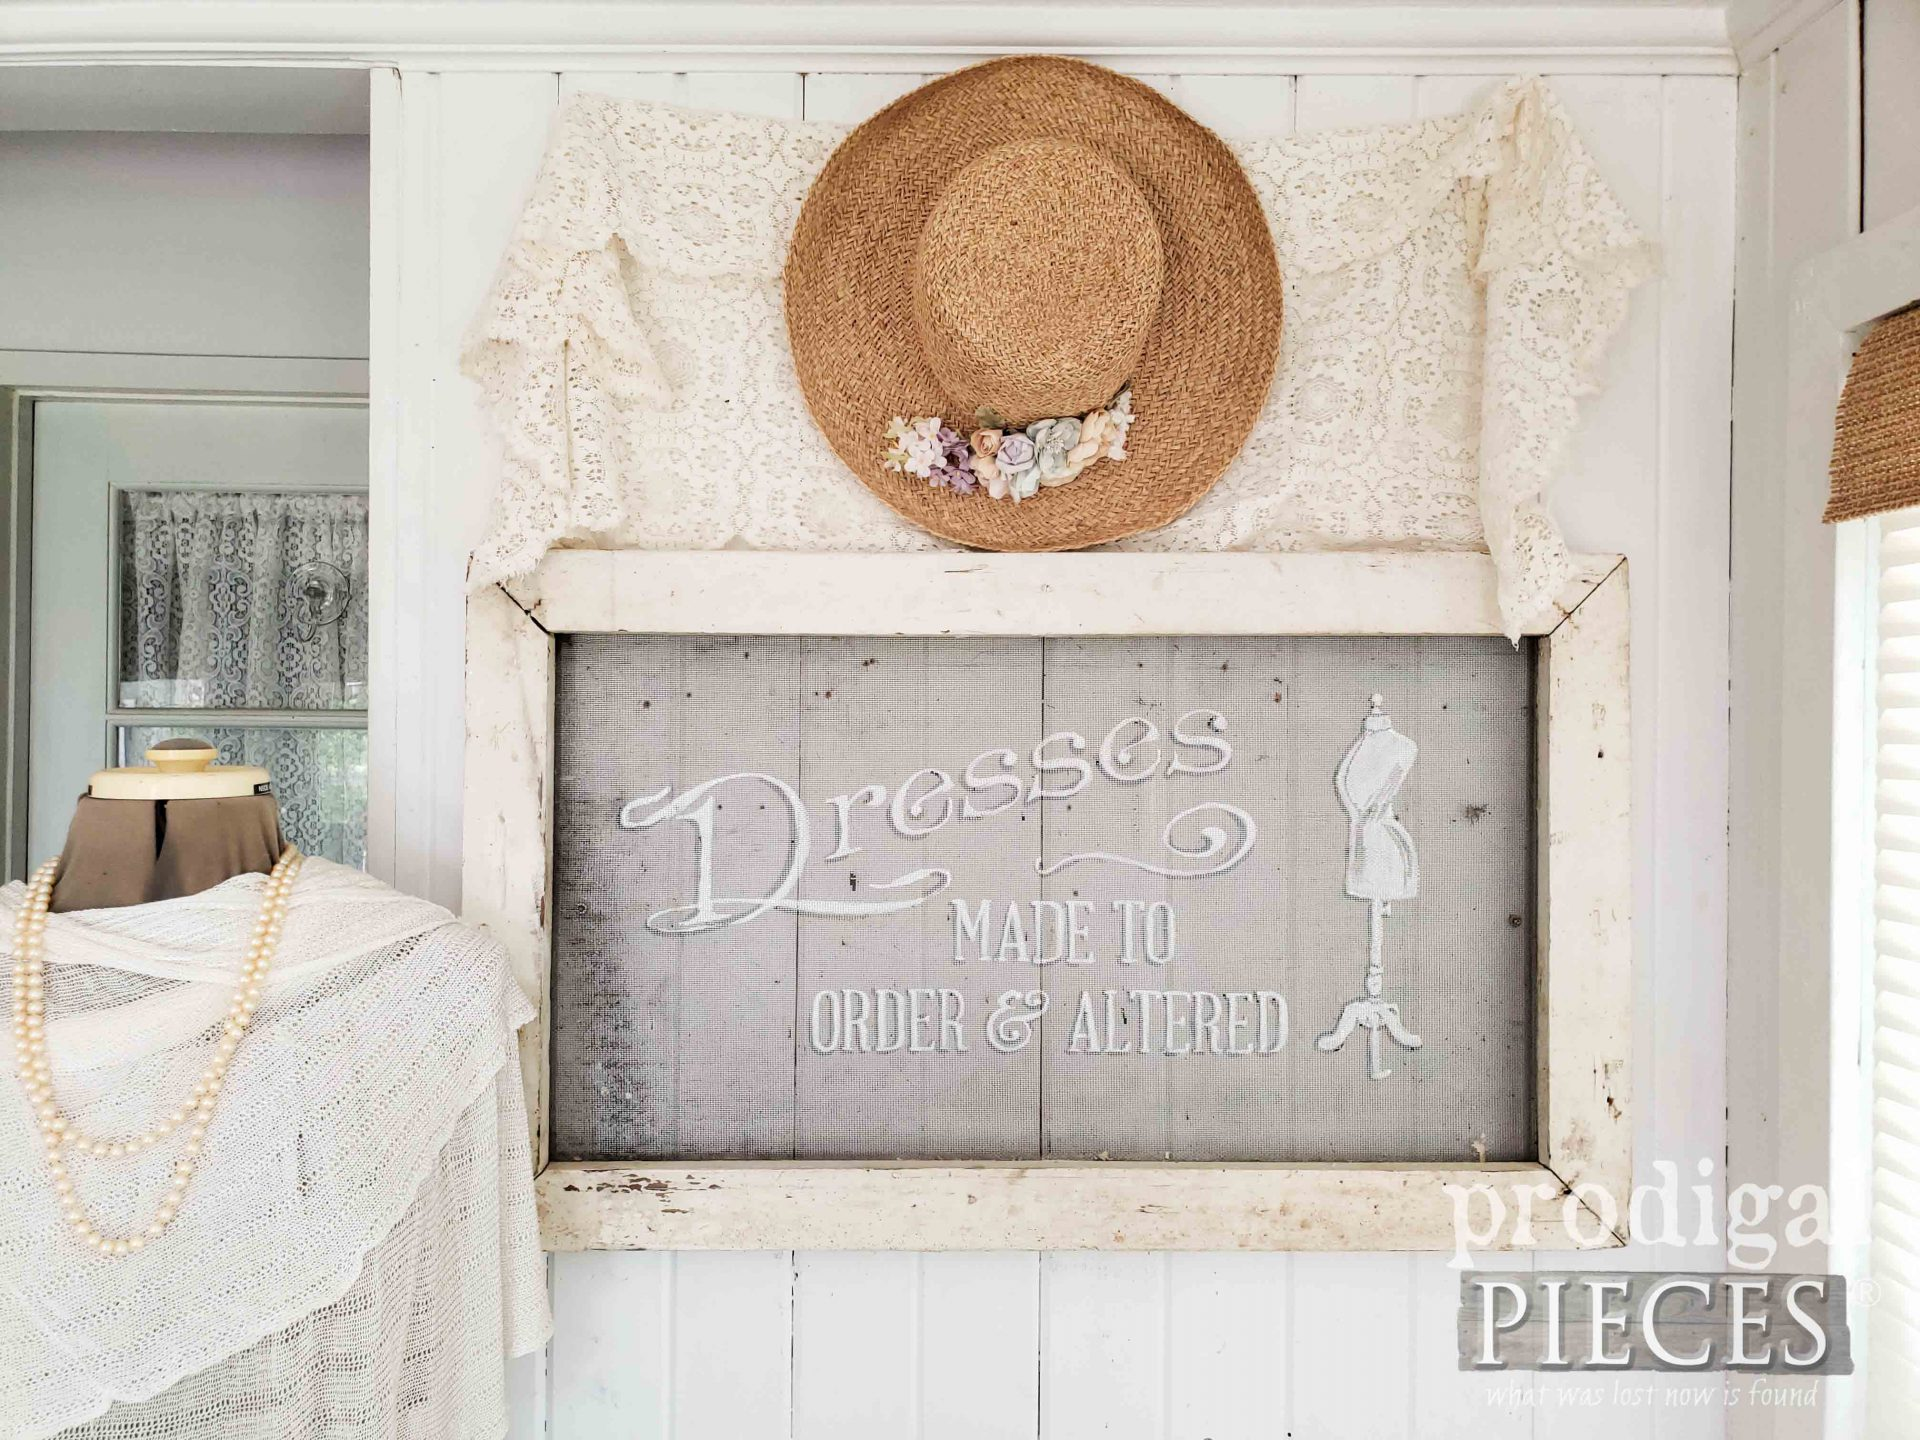 Rustic Painted Window Screen Art Typography with Video Tutorial by Larissa of Prodigal Pieces | prodigalpieces.com #prodigalpieces #diy #farmhouse #salvage #home #homedecor